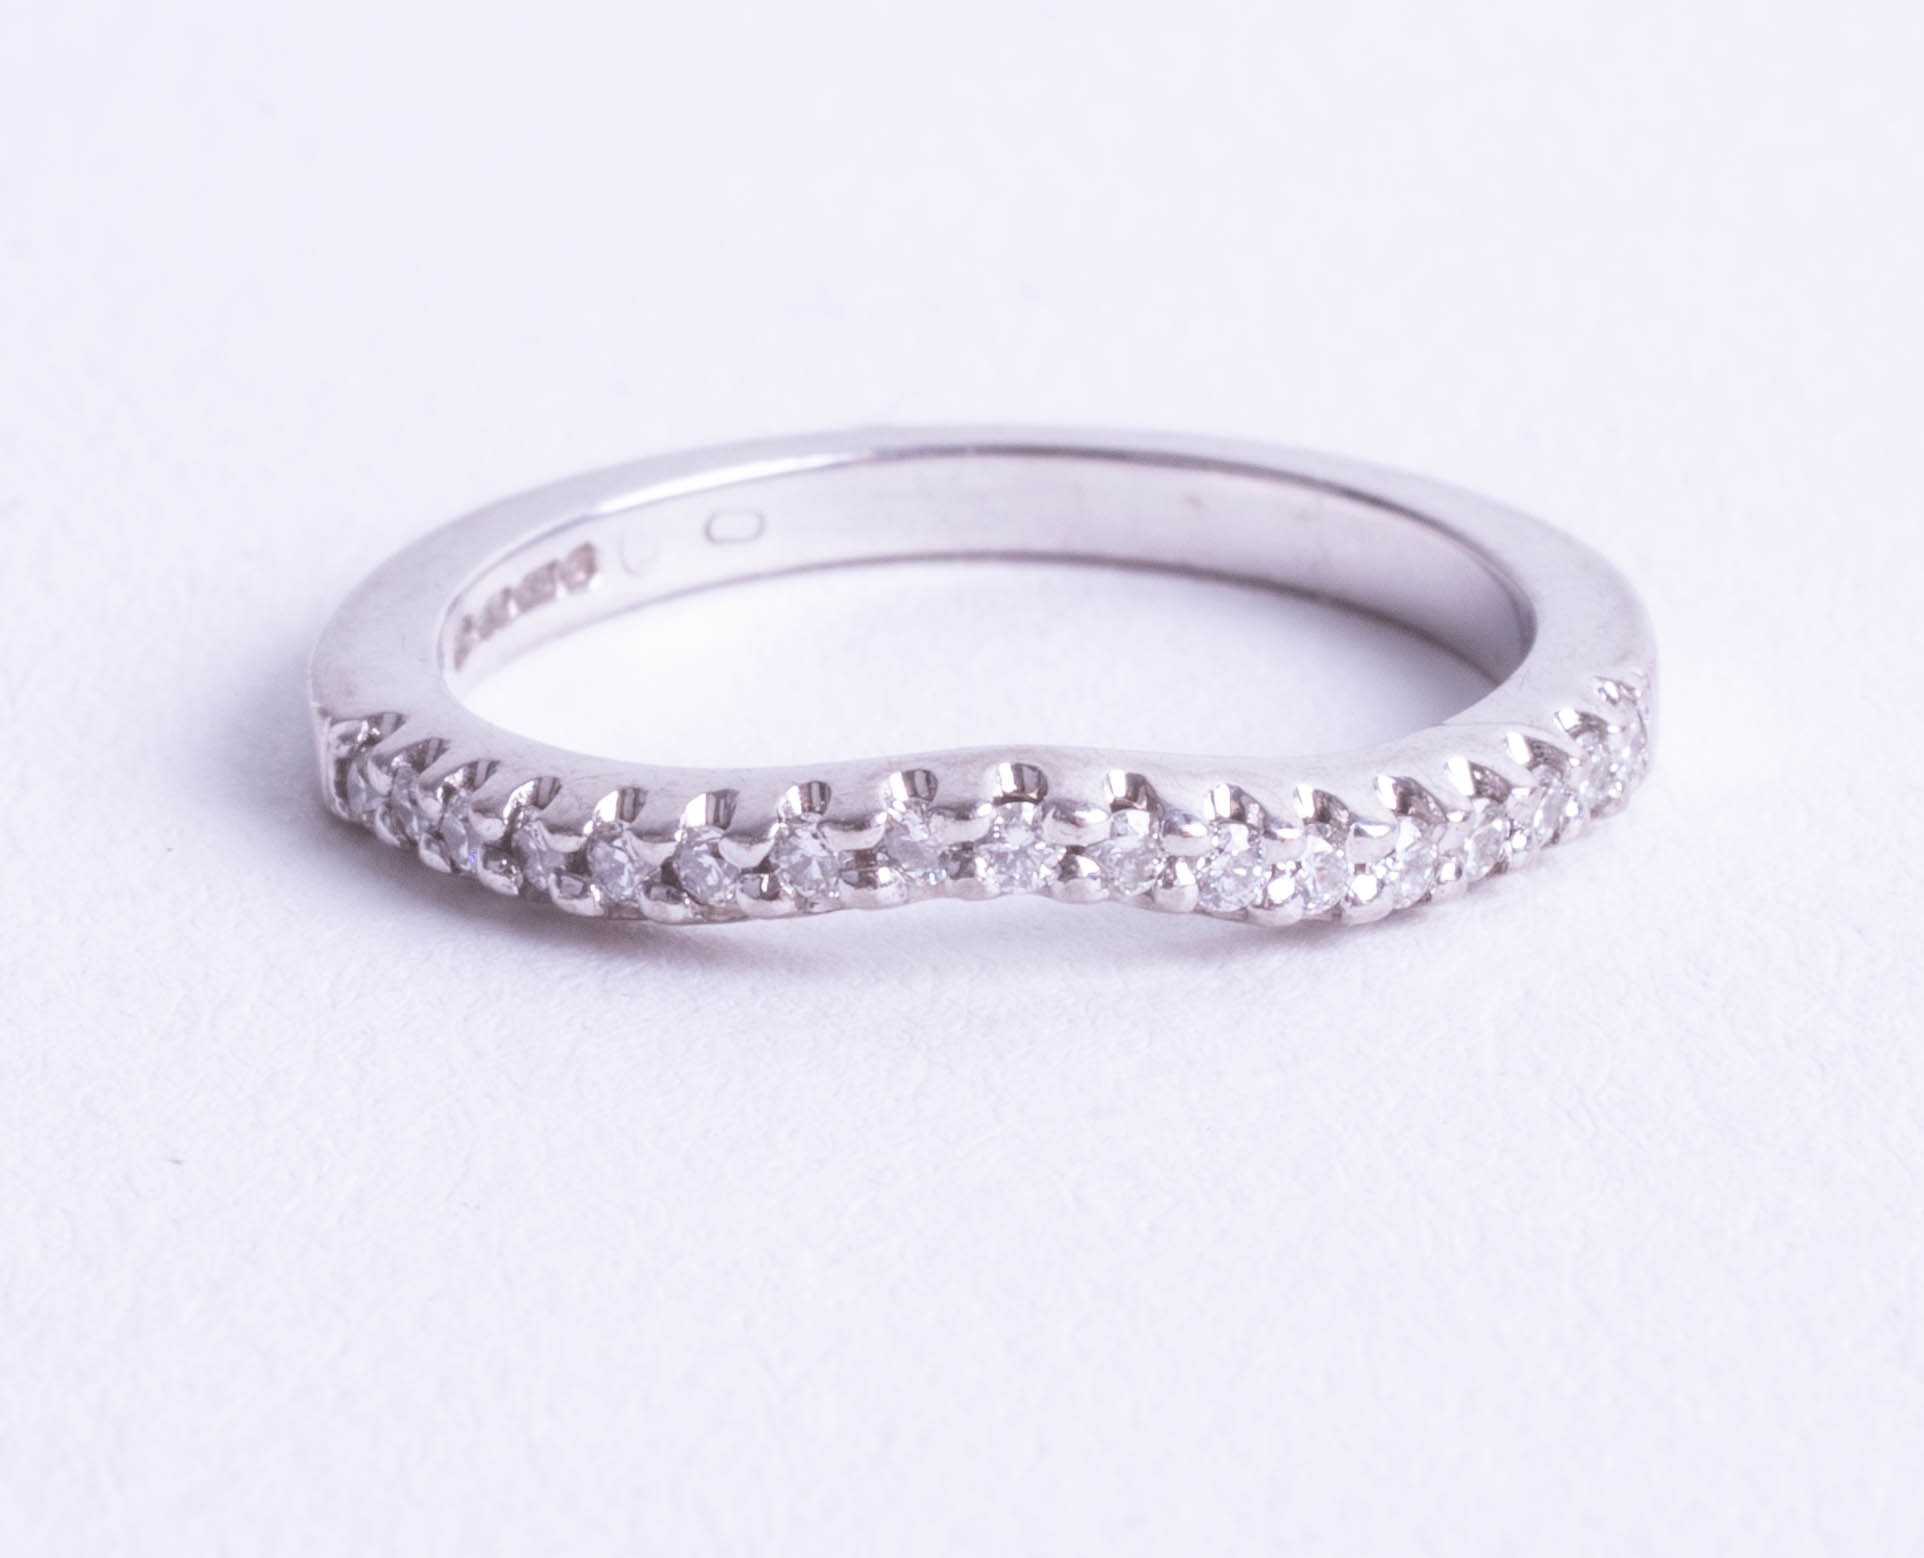 Lot 109 - An 18ct white gold 17 stone diamond set half eternity ring, total combined weight 0.17ct, with